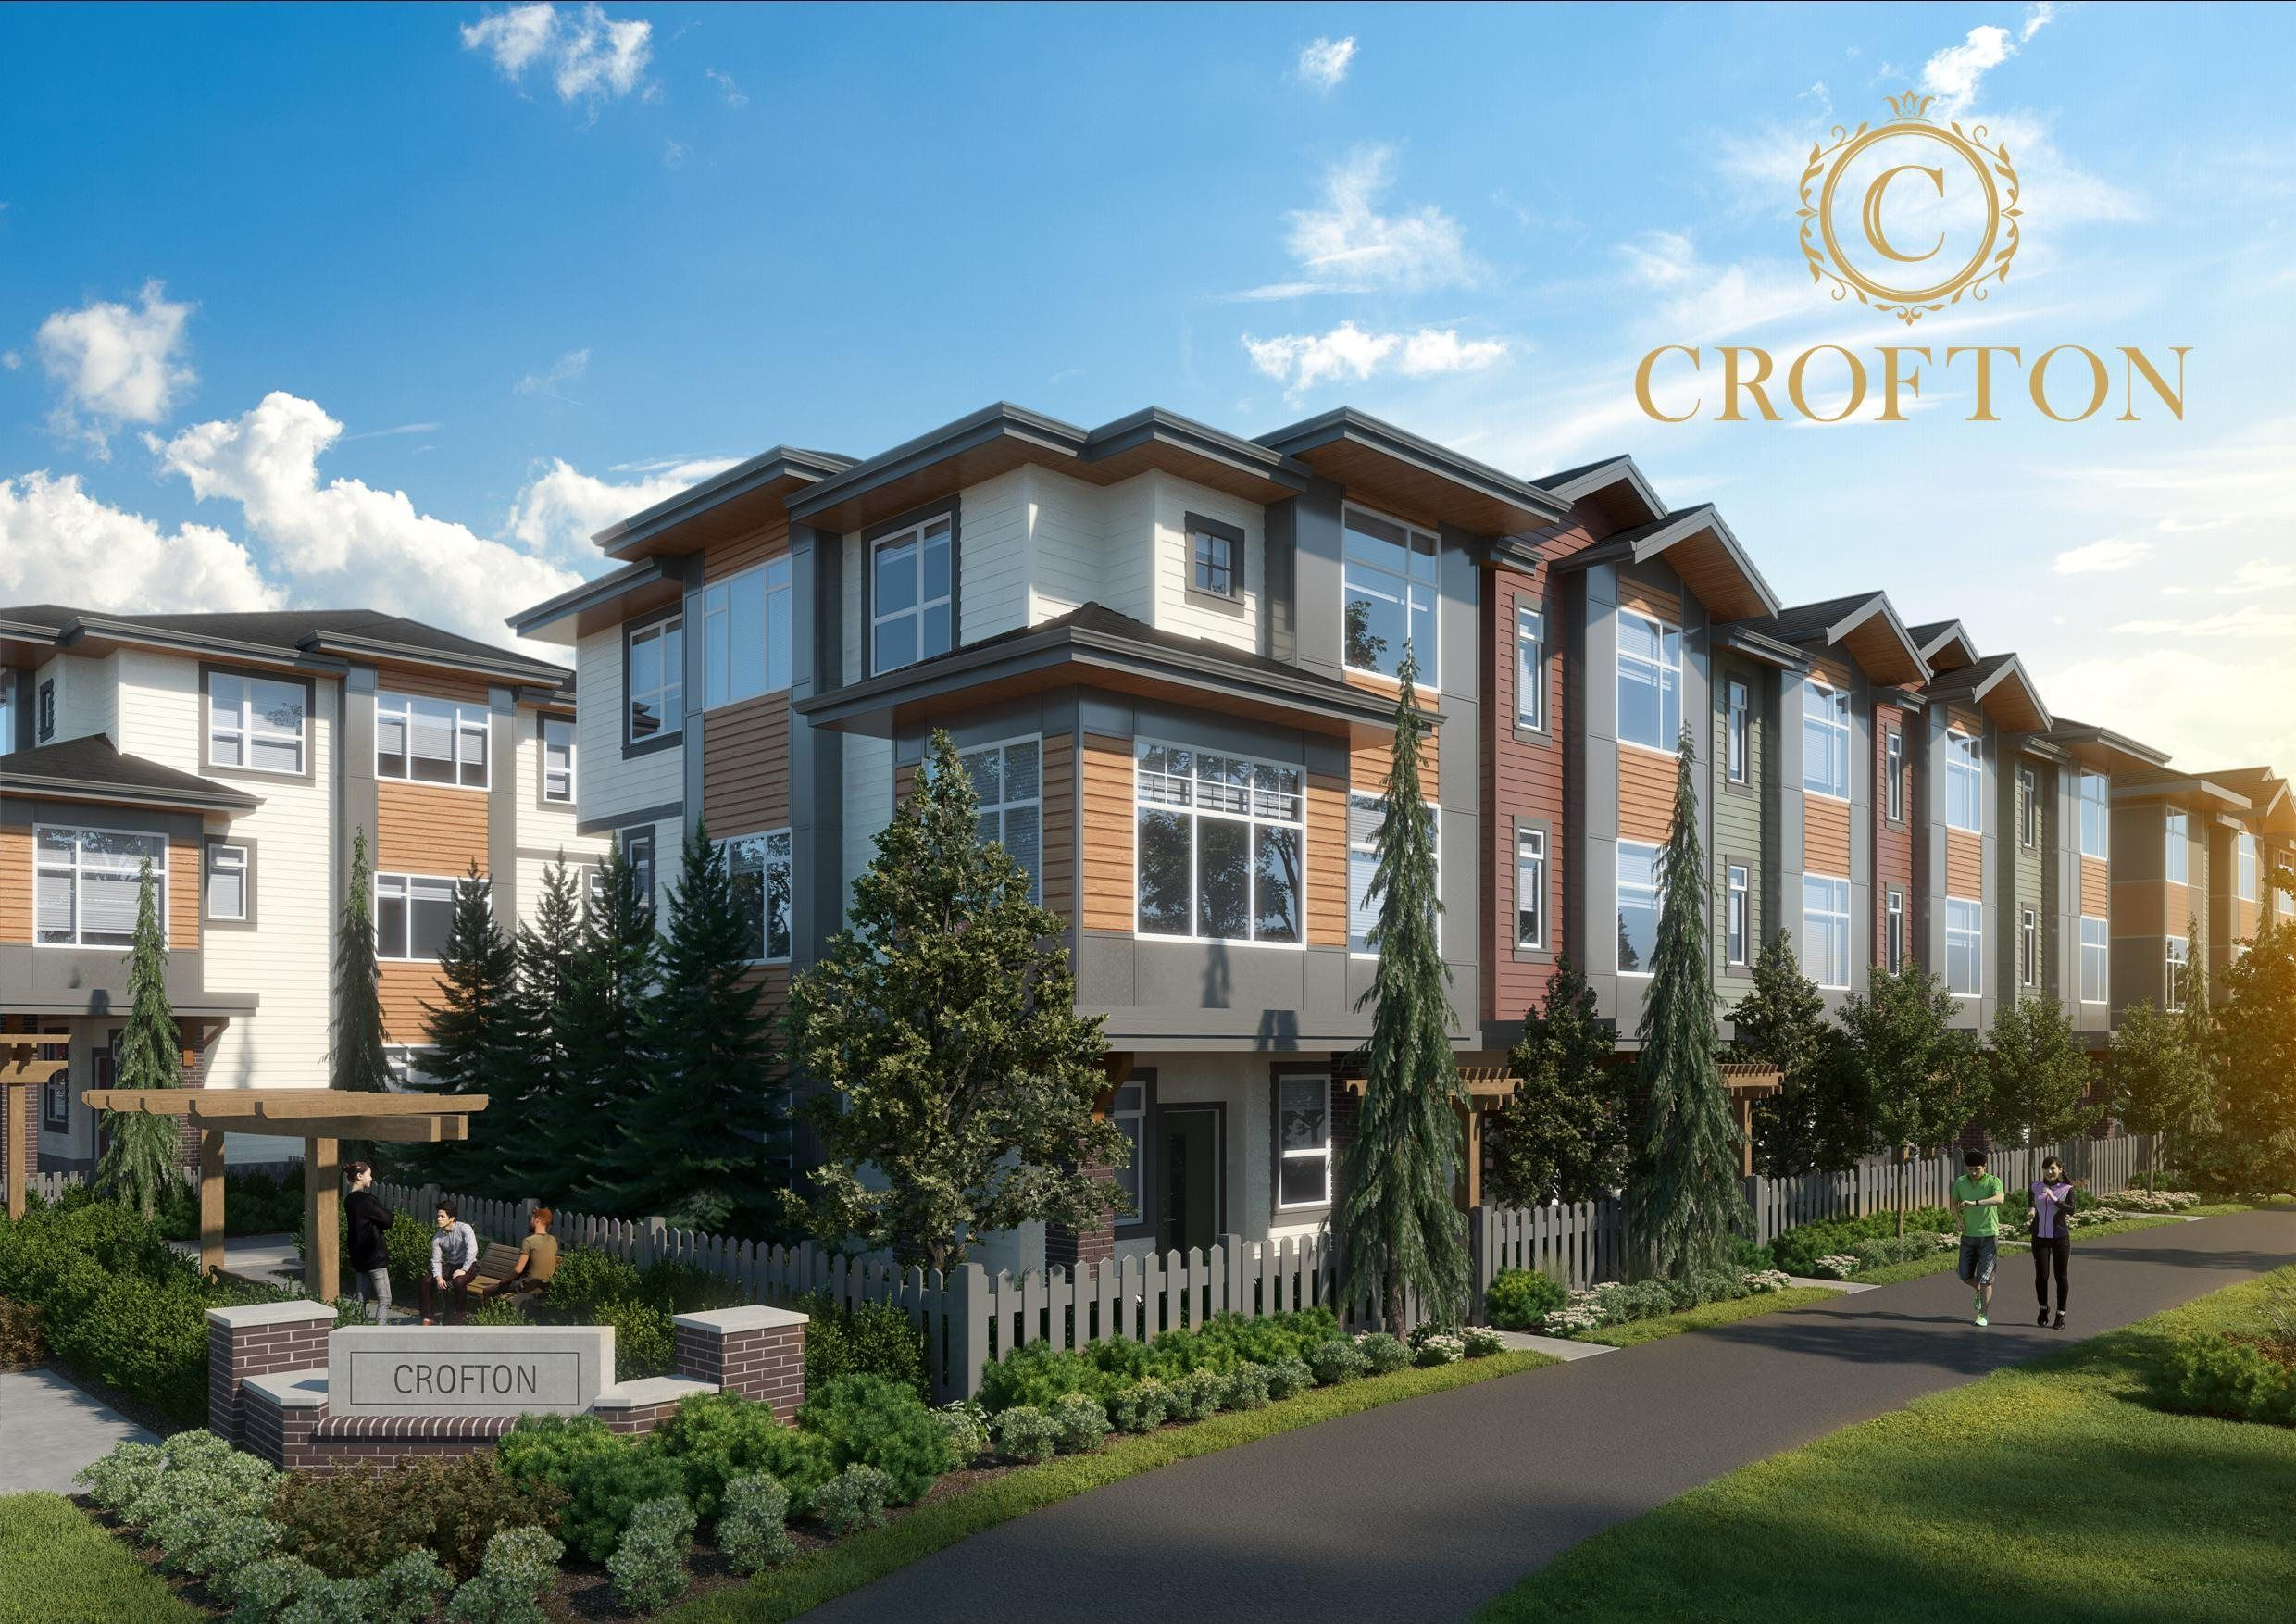 """Main Photo: 25 20763 76 Avenue in Langley: Willoughby Heights Townhouse for sale in """"CROFTON"""" : MLS®# R2620972"""